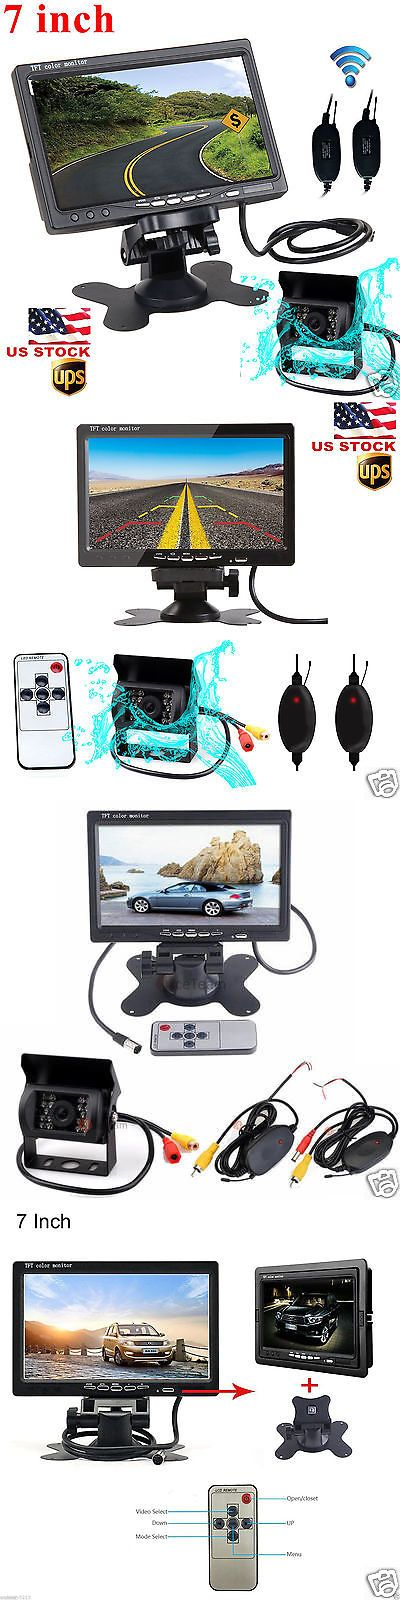 Rear View Monitors Cams and Kits: Wireless Rear View Backup Camera Night Vision System +7 Monitor For Rv Truck Bus -> BUY IT NOW ONLY: $47.99 on eBay!